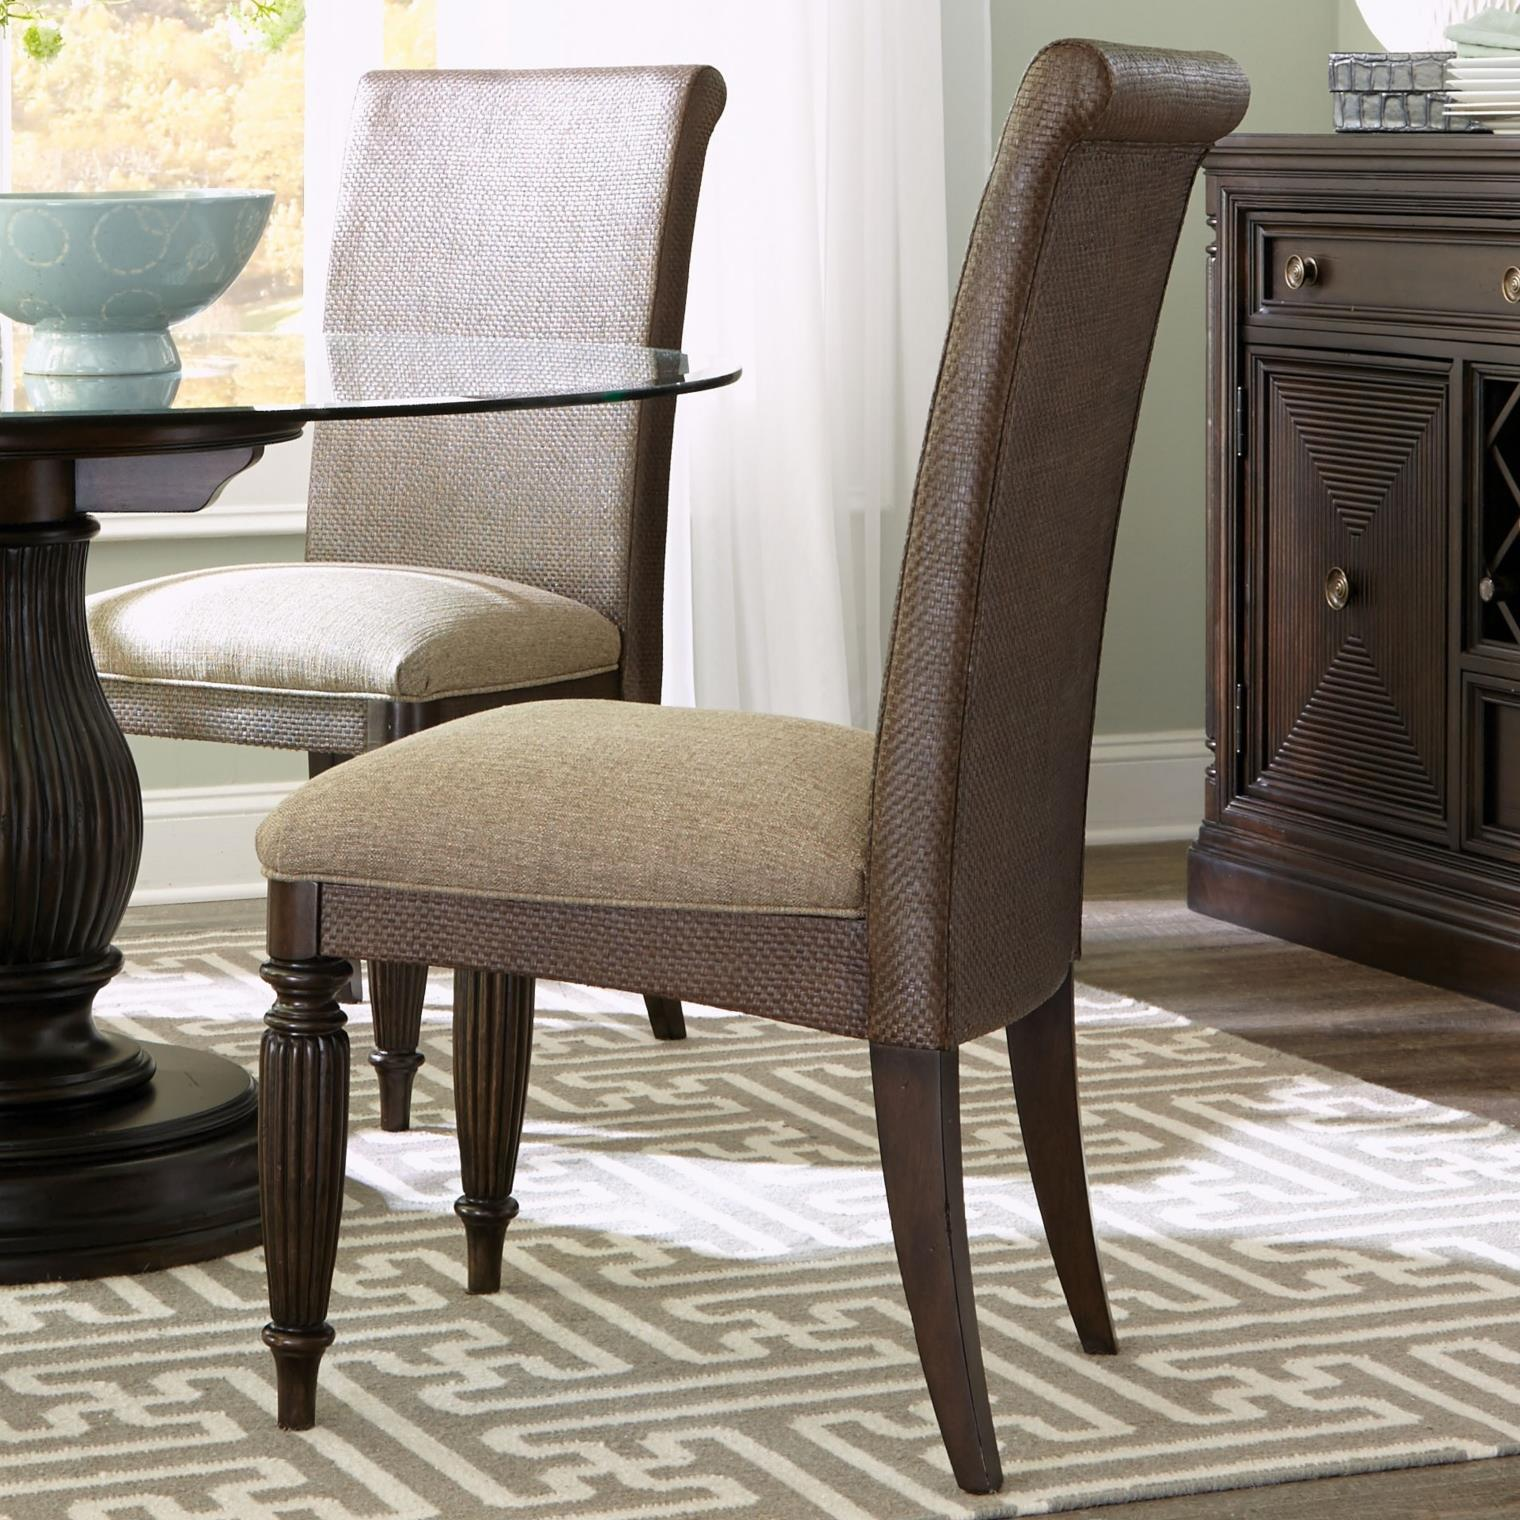 Broyhill Furniture Jessa Woven Upholstered Seat Side Chair - Item Number: 4980-585